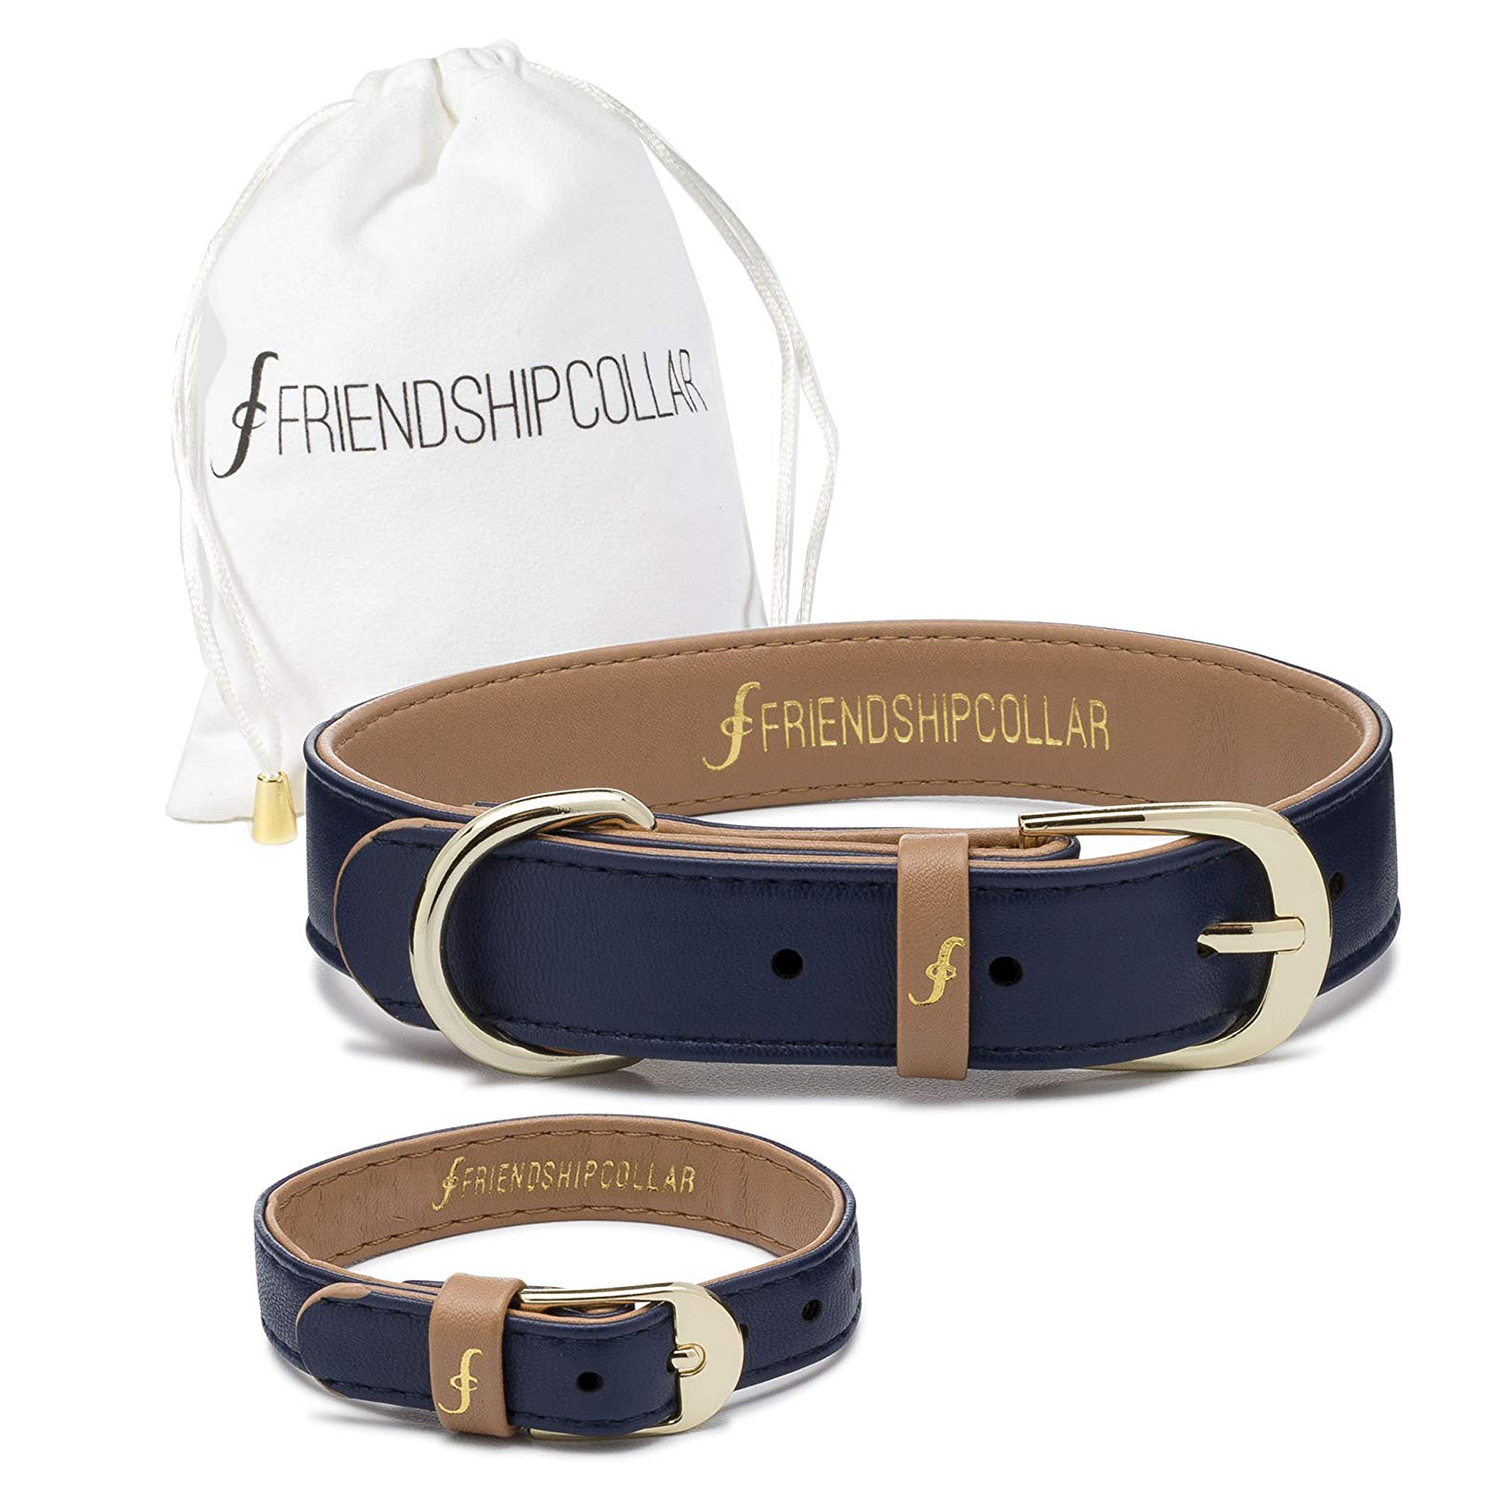 FriendshipCollar Dog Collar and Friendship